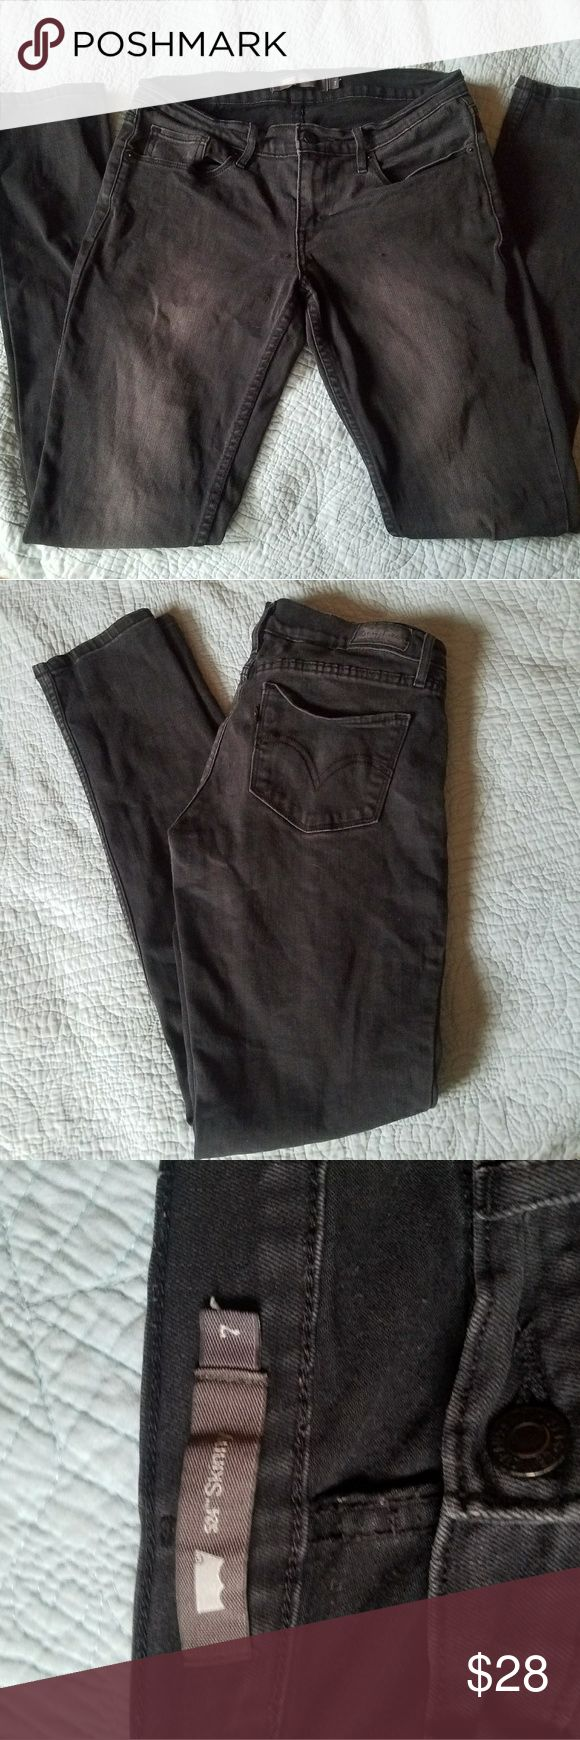 ✎ Levi 524 skinny black label distressed jeans ✎ LAST DAY! LOWEST PRICE! These Jeans are perfect for a edgy look. Perfect to pair with a graphic tee and converse. These jeans have a black Levi label and distressing holes on one knee. These are going to look great on you Levi's Jeans Skinny